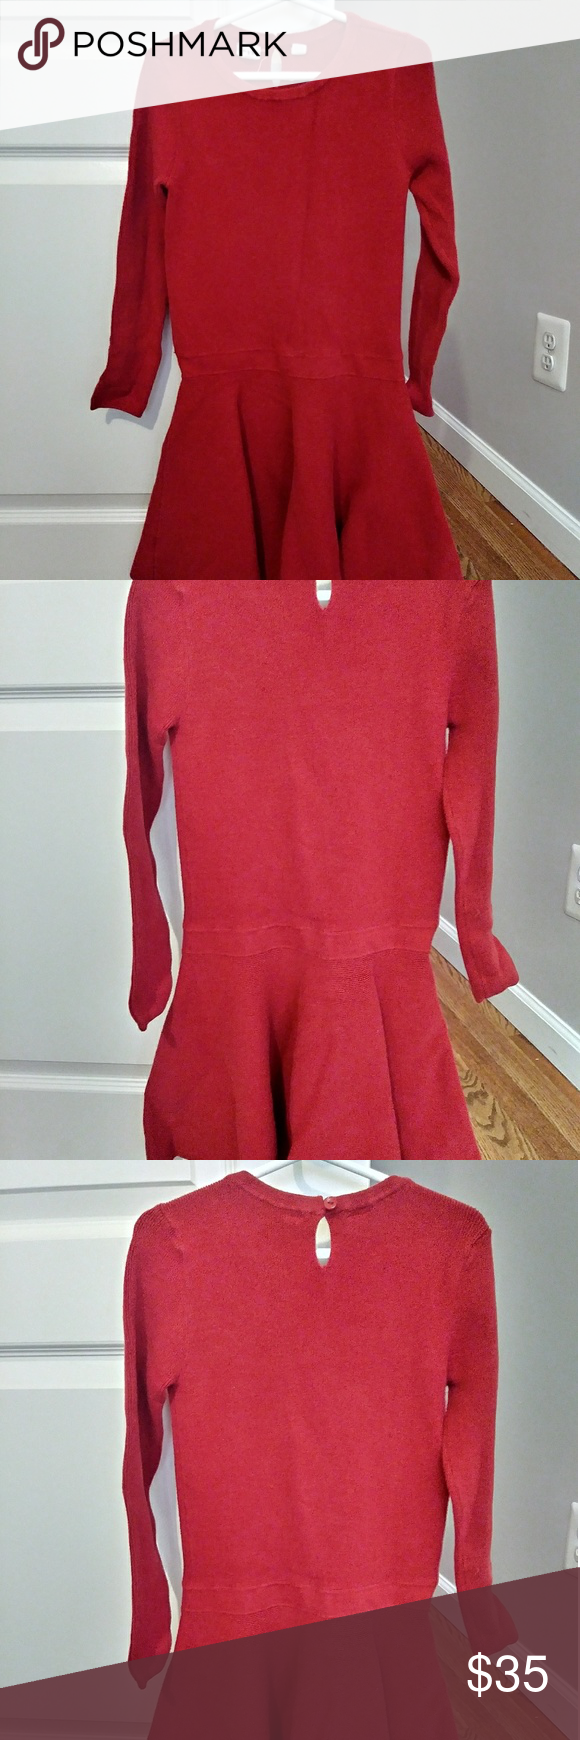 Gap Girls Holiday Dress Girls Holiday Dresses Red Sweater Dress Clothes Design [ 1740 x 580 Pixel ]